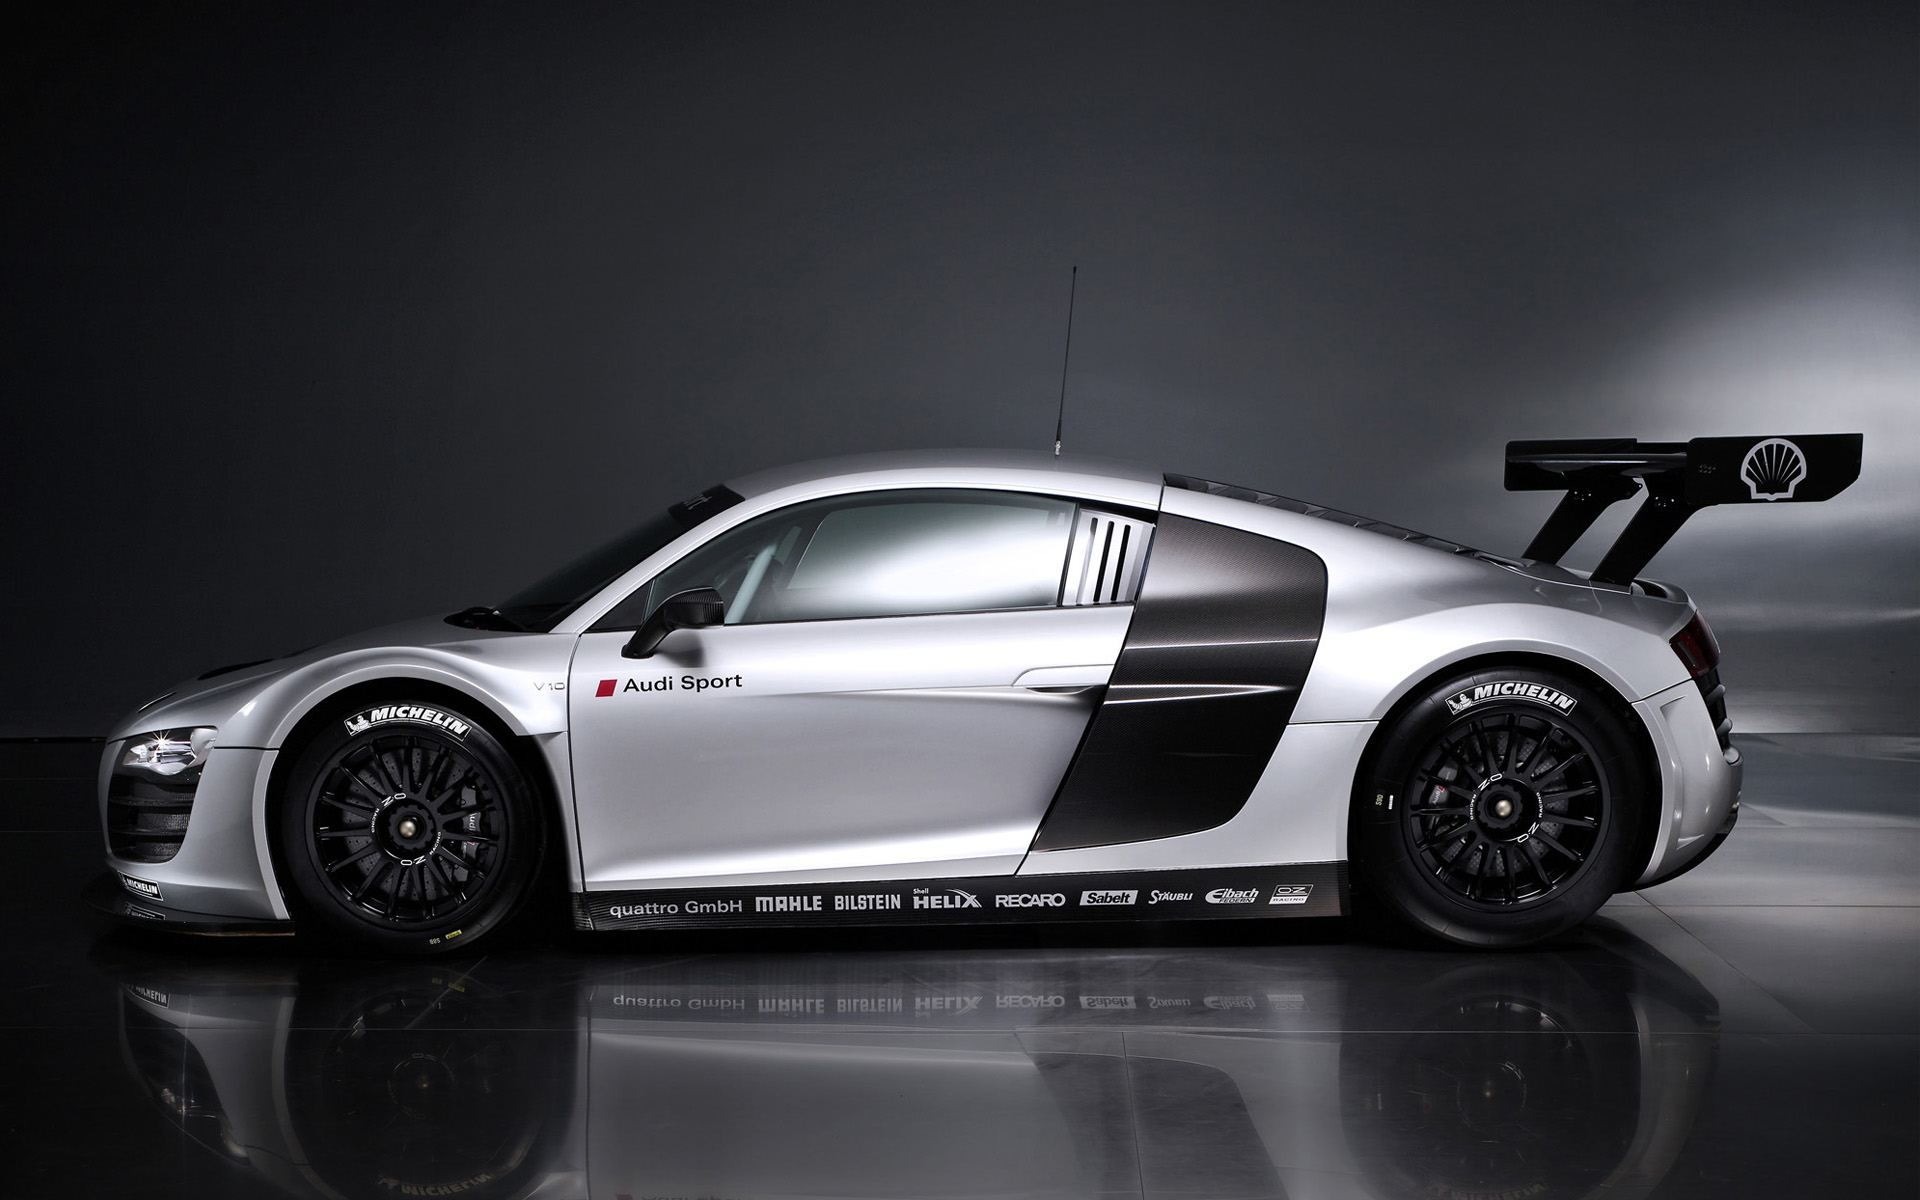 2013 Audi R8 LMS 1080p HD Wallpapers - My Site